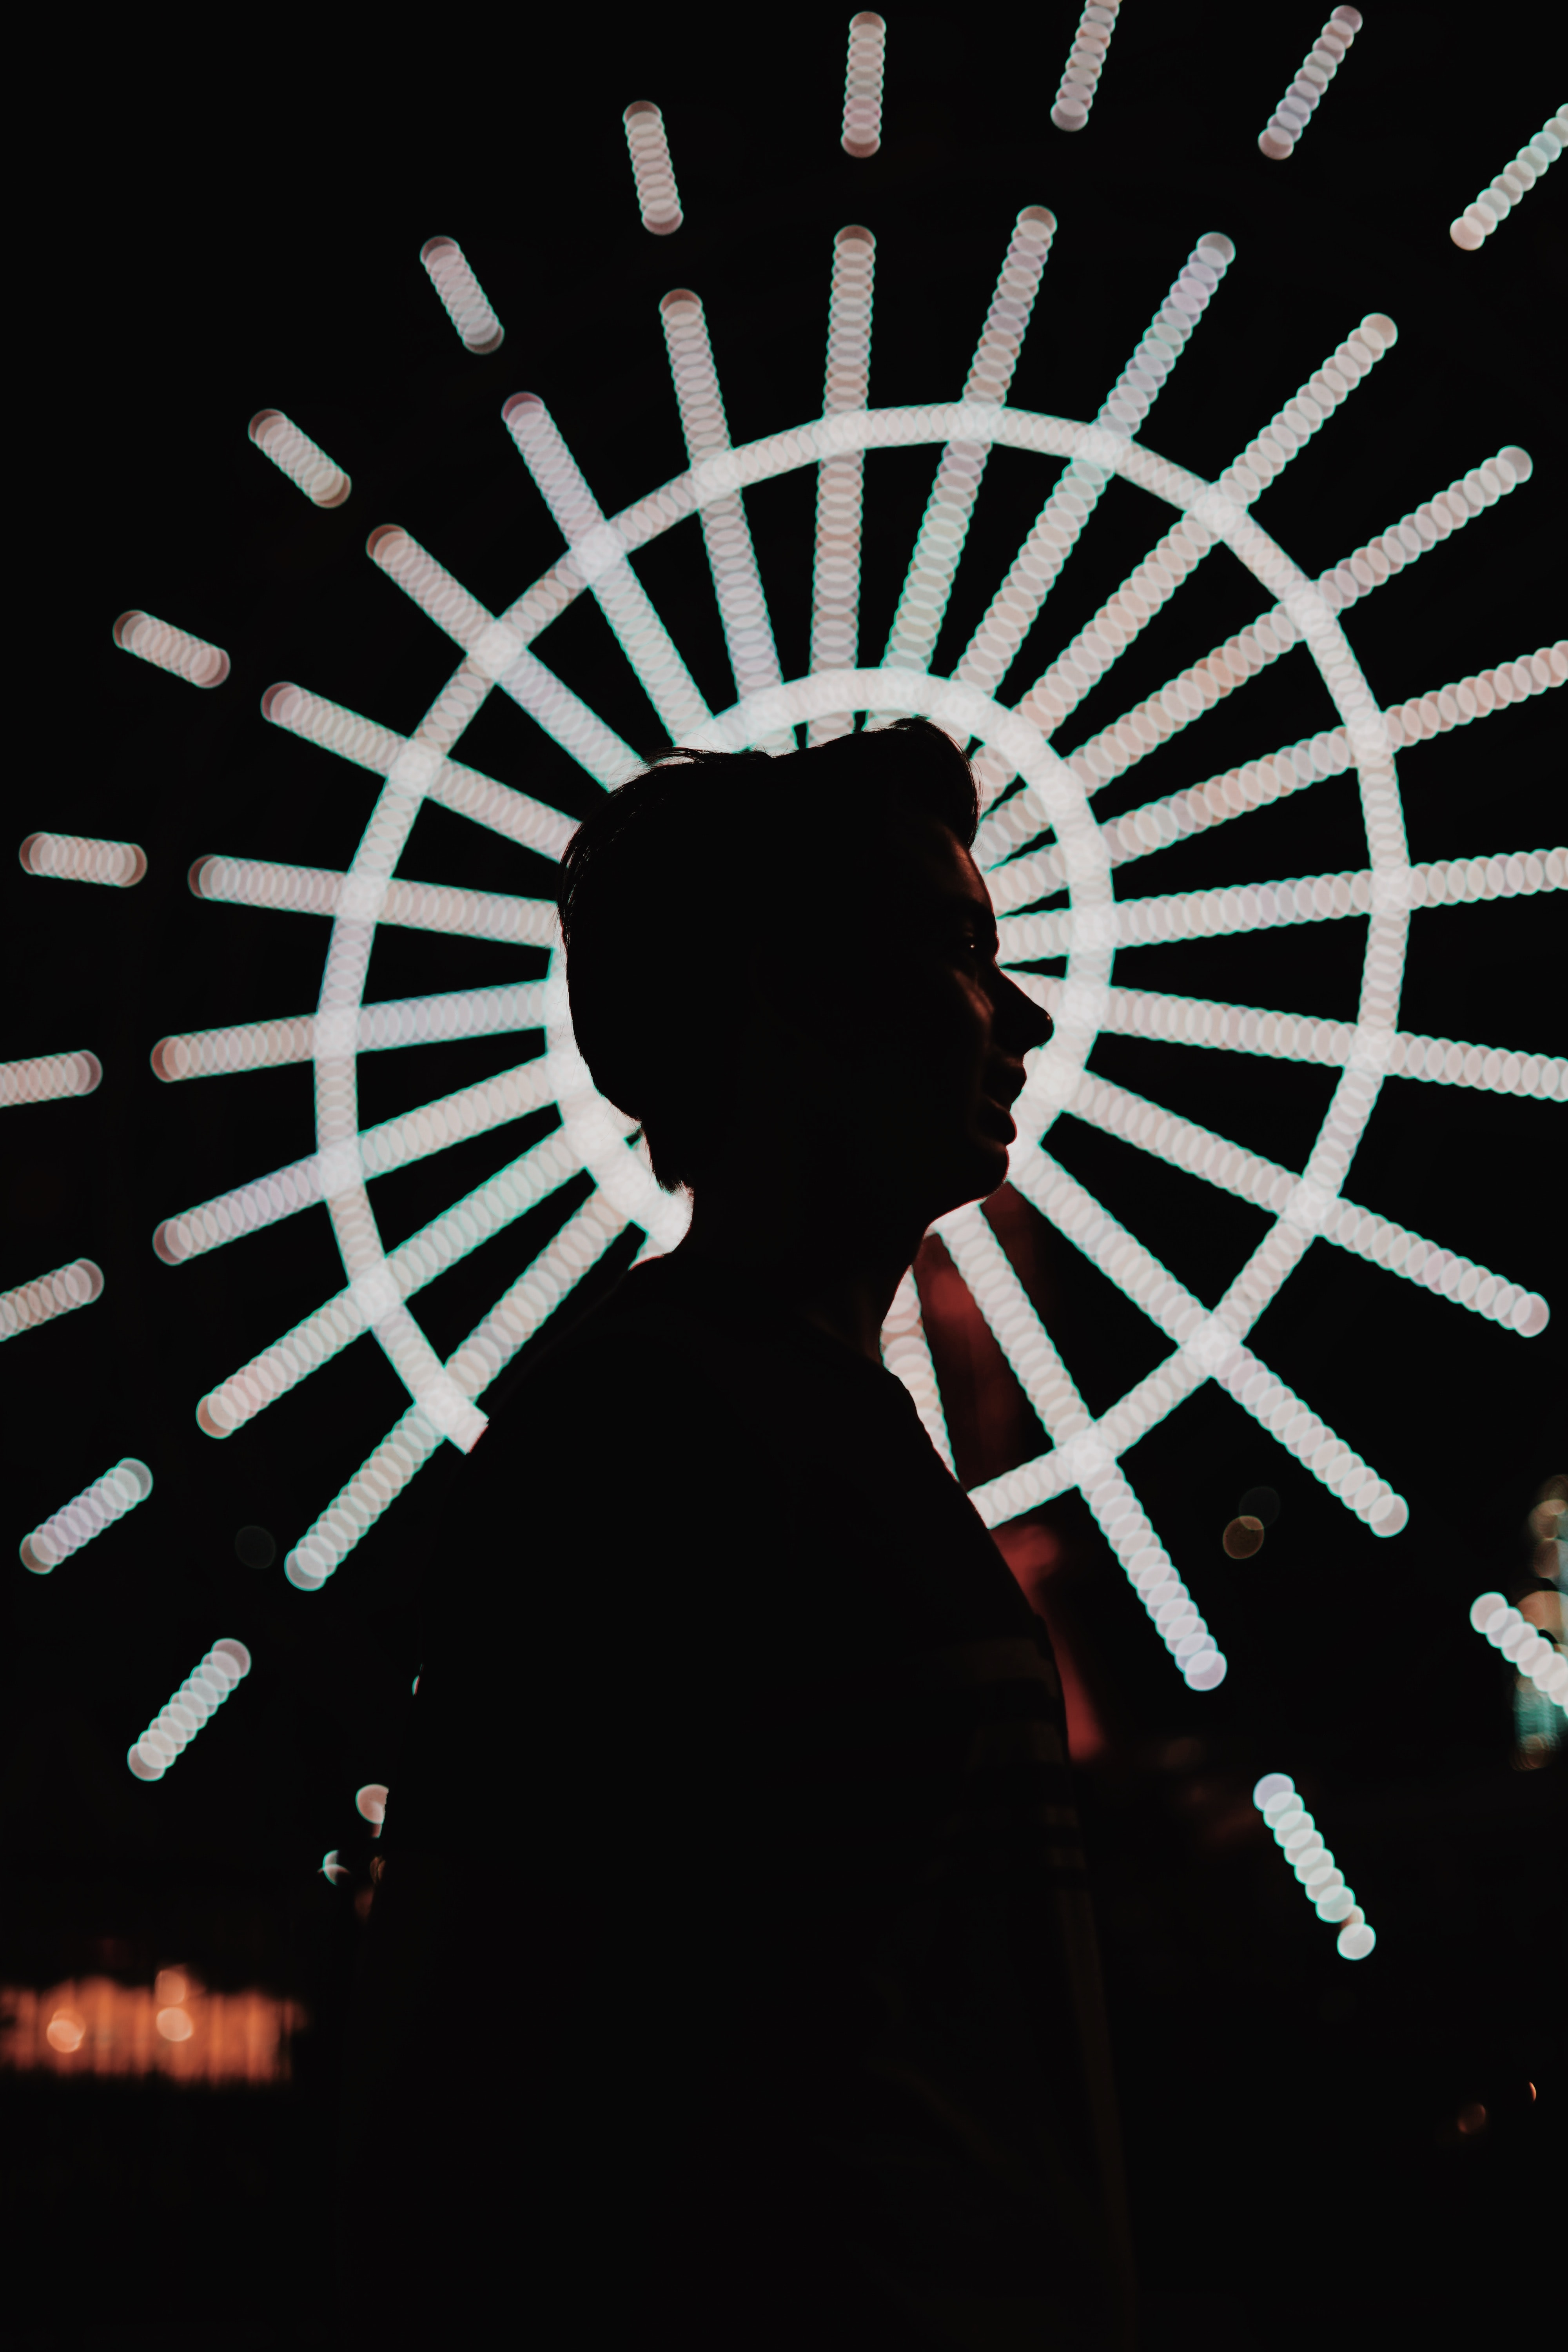 silhouette photography of woman standing near lighted ferris wheel